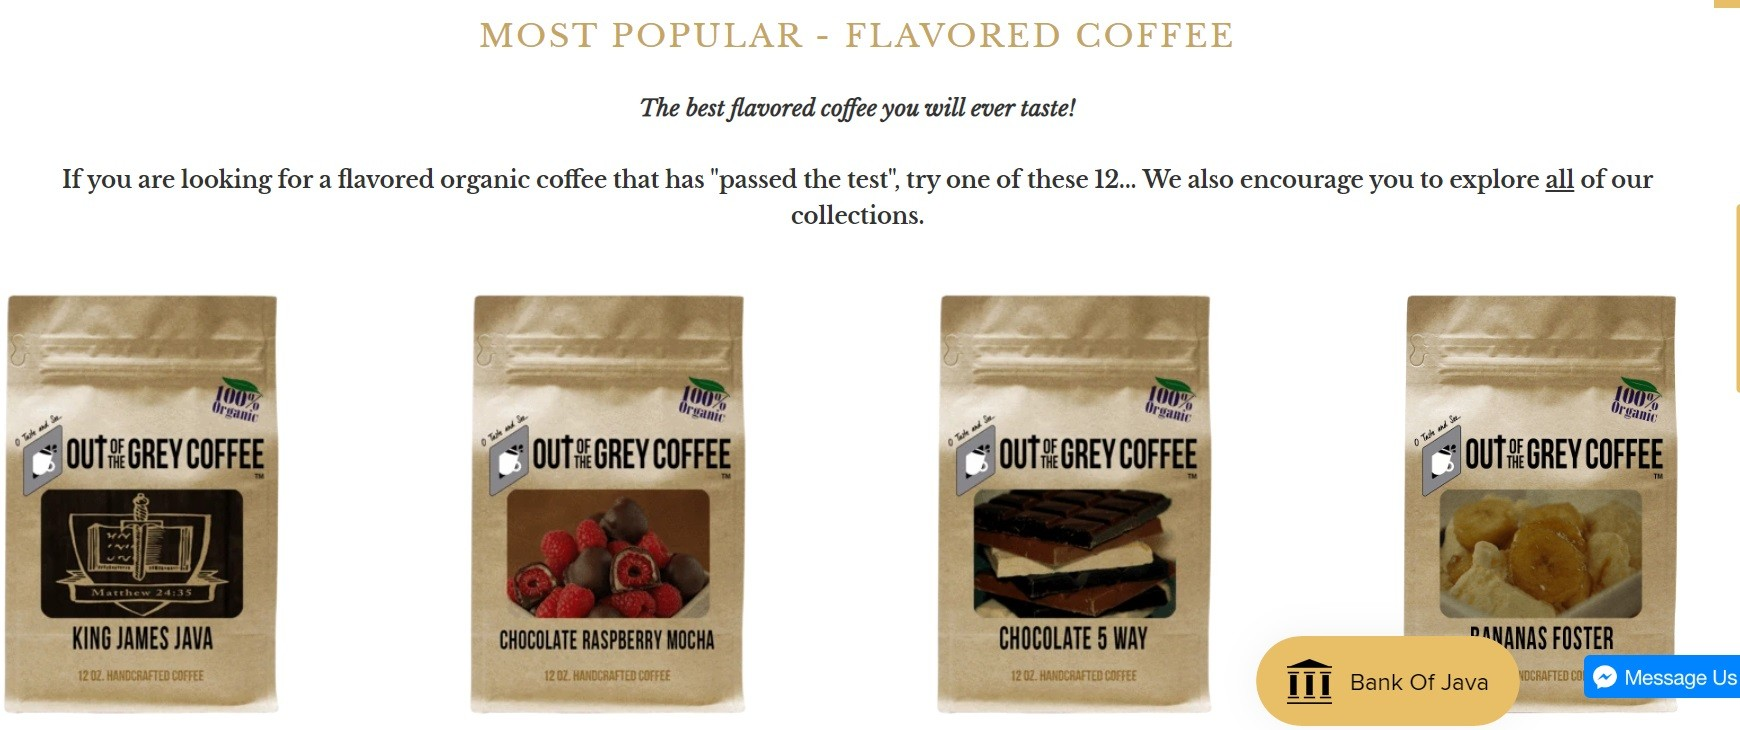 Most Popular Flavored Coffee